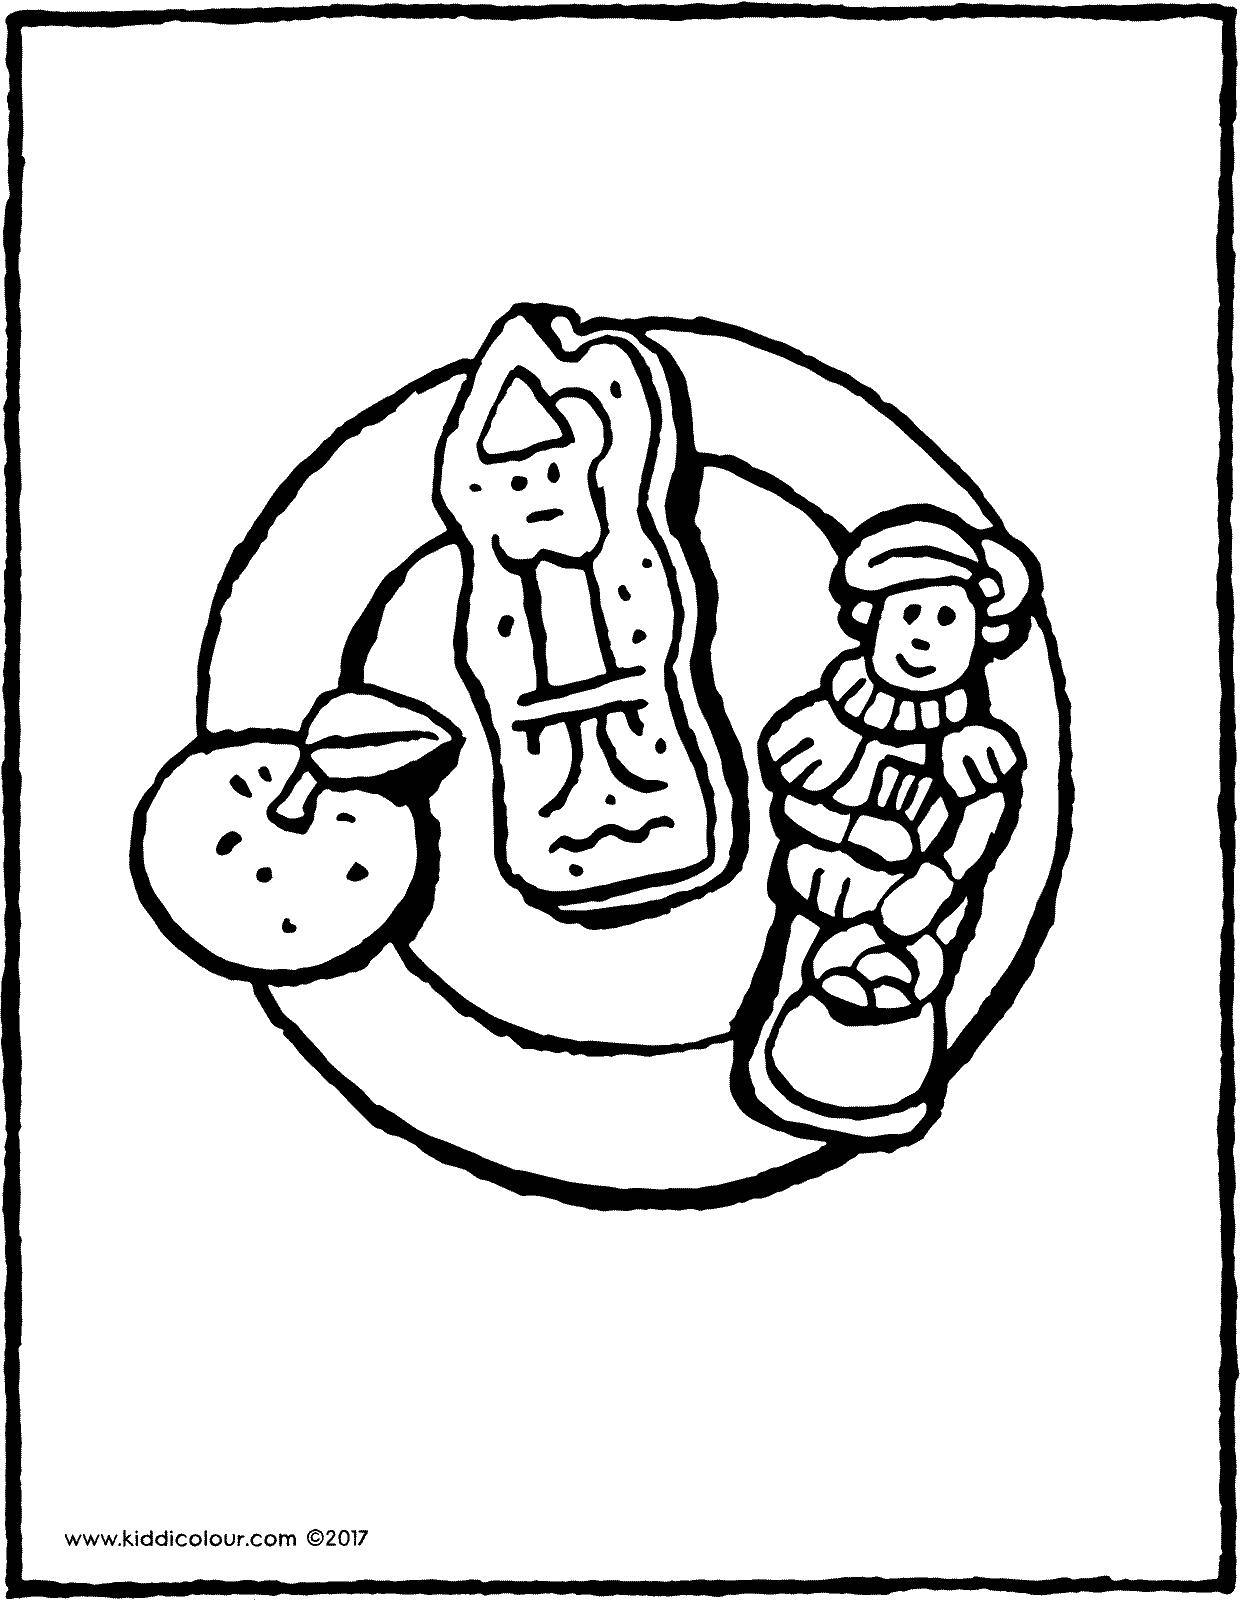 plate of Saint Nicholas sweets colouring page page drawing picture 01V